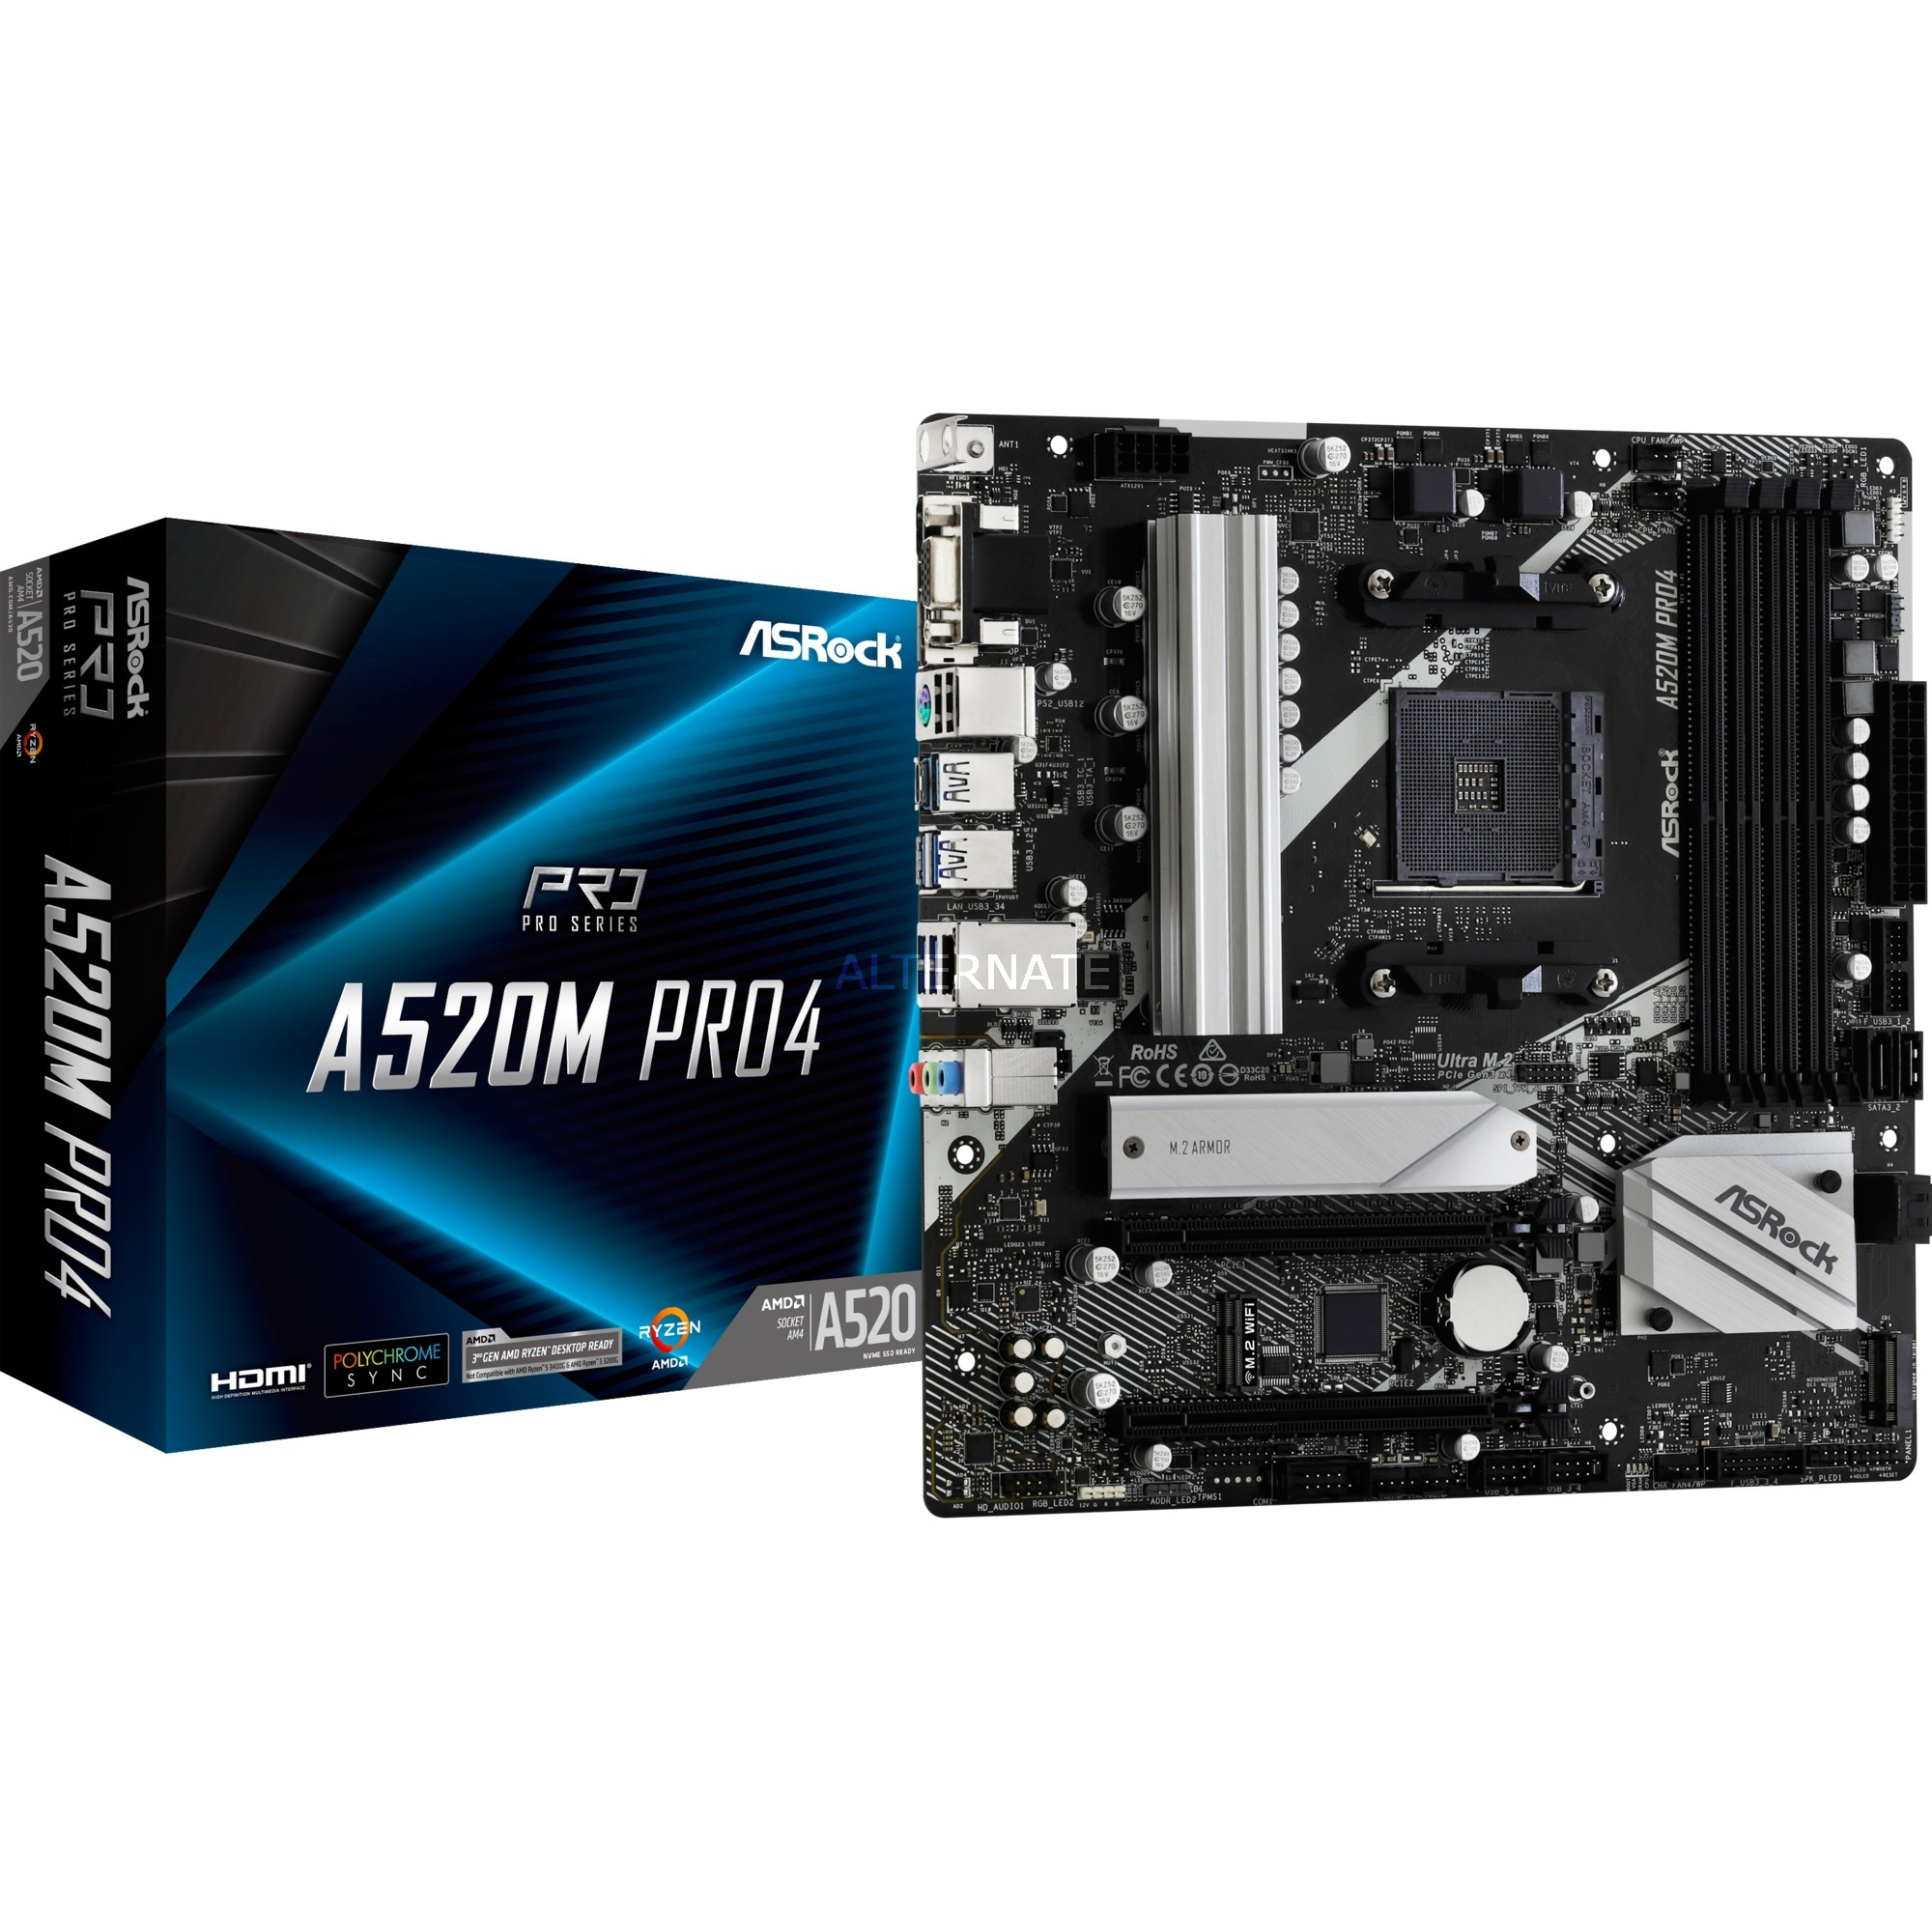 Image of A520M PRO4, Mainboard